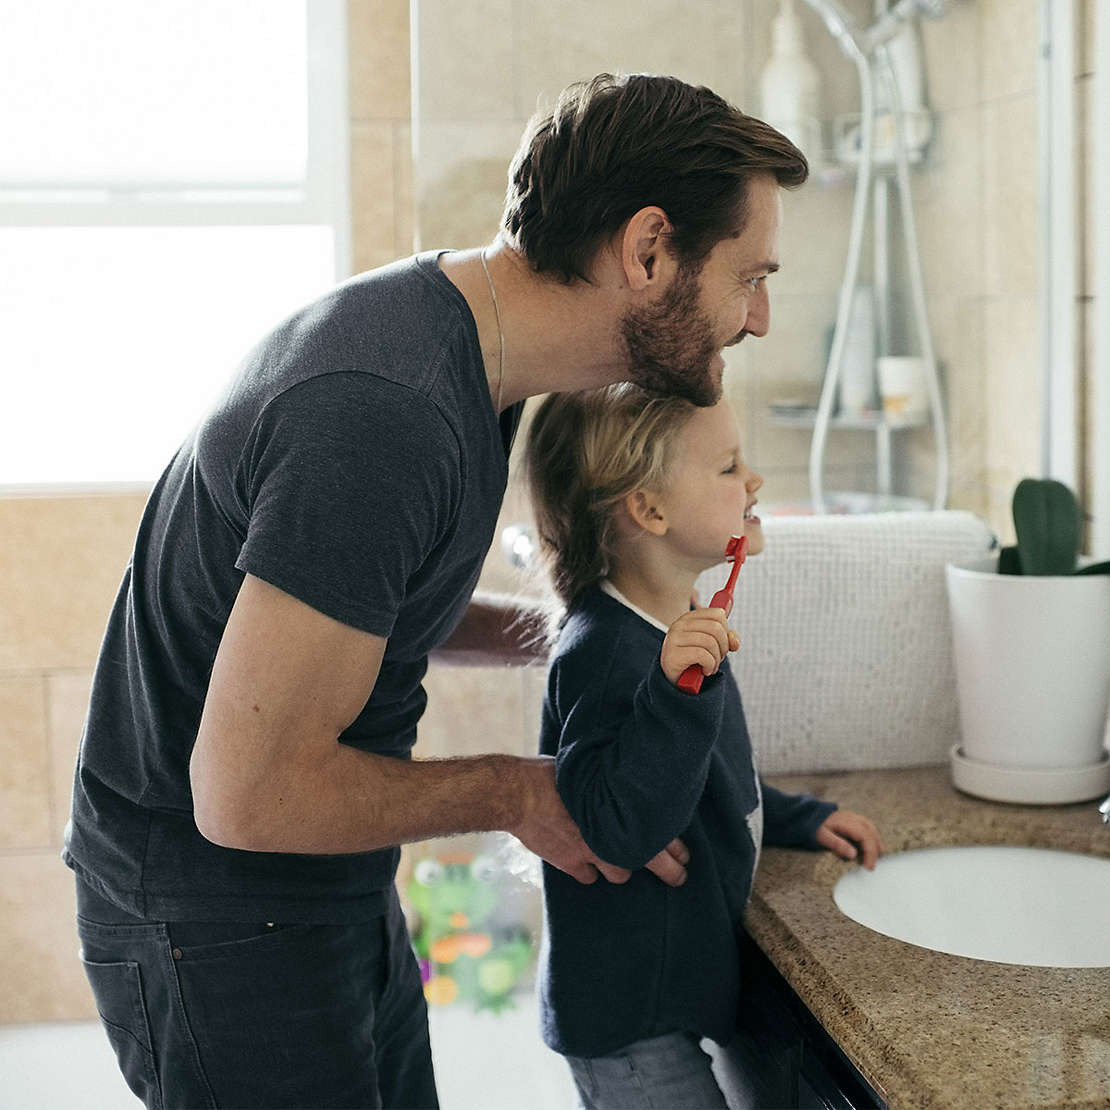 Father helping daughter brush her teeth